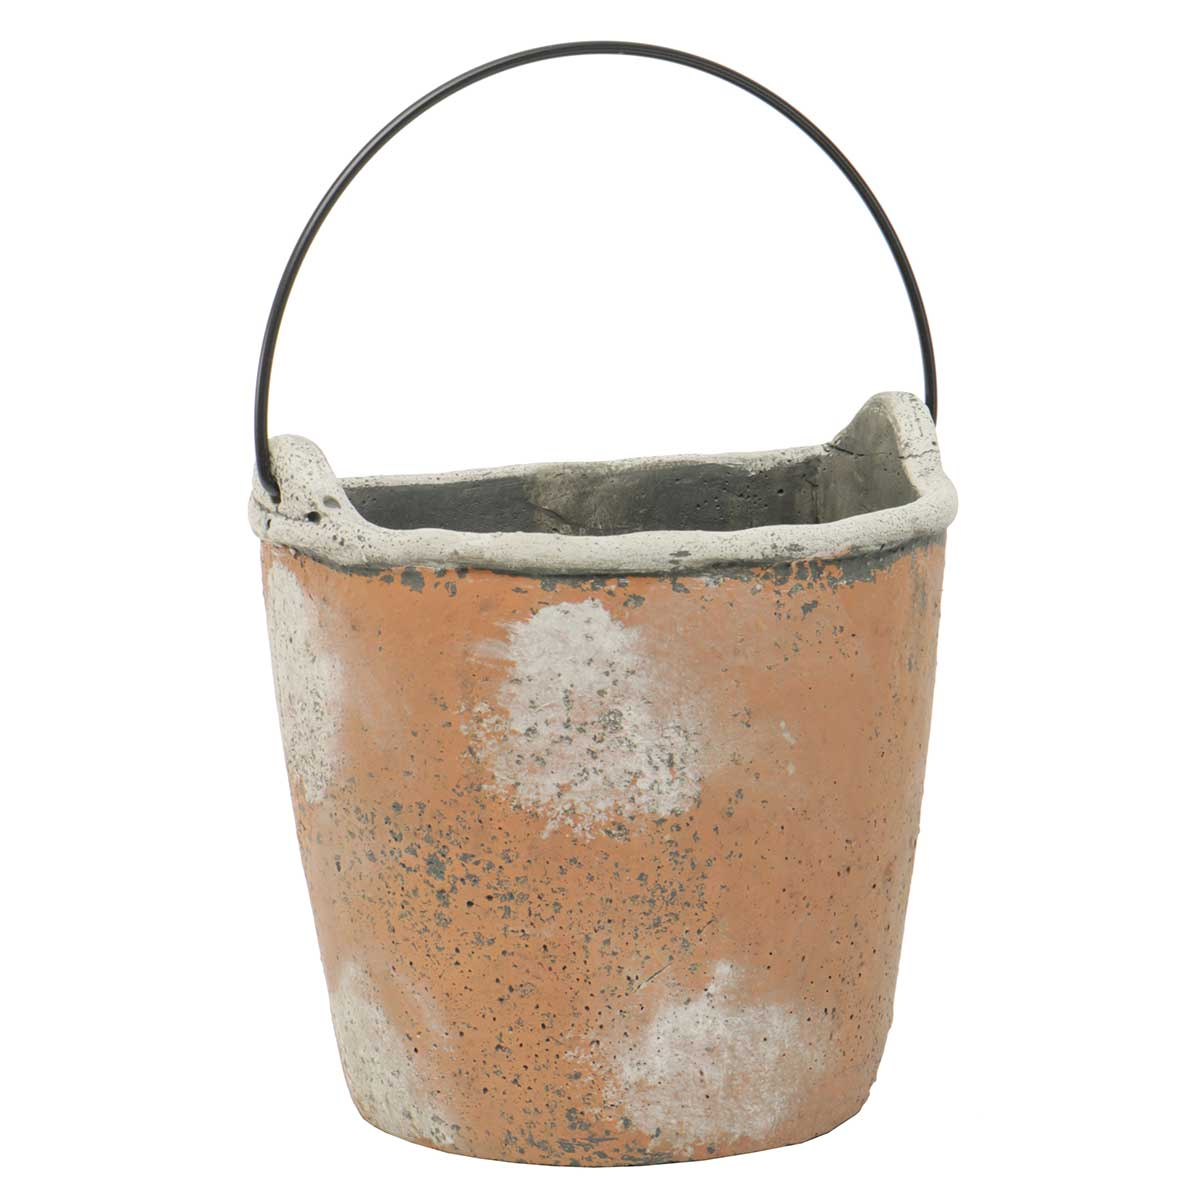 "WALL BUCKET WITH HANDLE 7""X5.5"" CONCRETE"